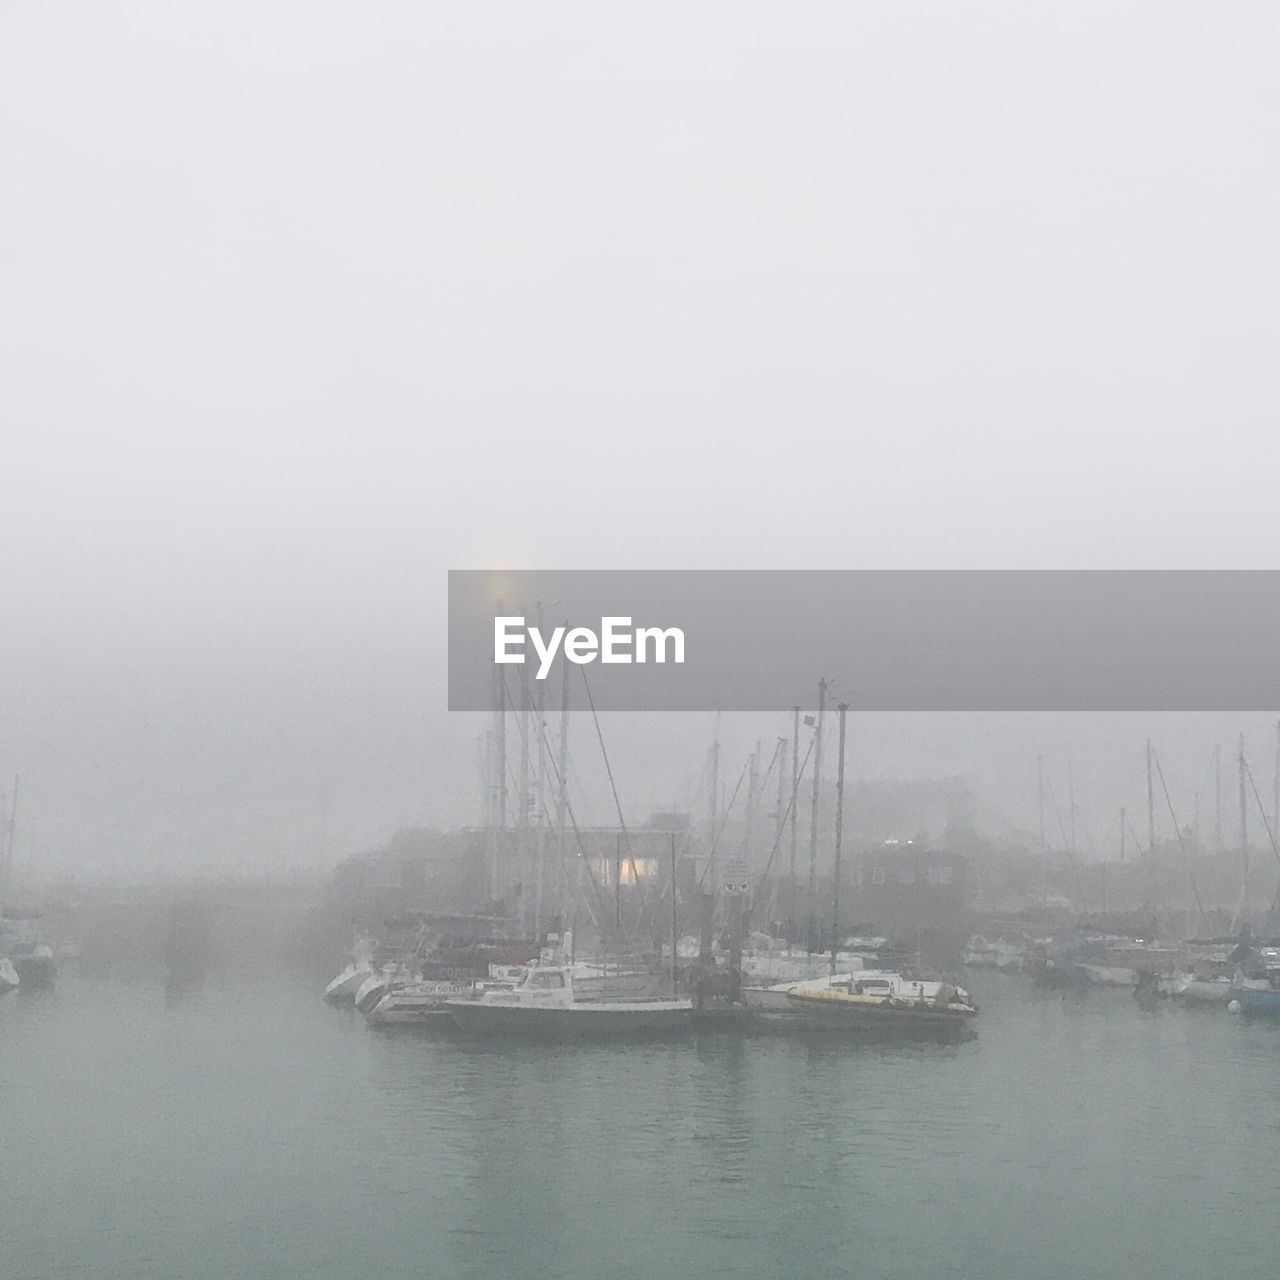 SAILBOATS IN SEA DURING FOGGY WEATHER